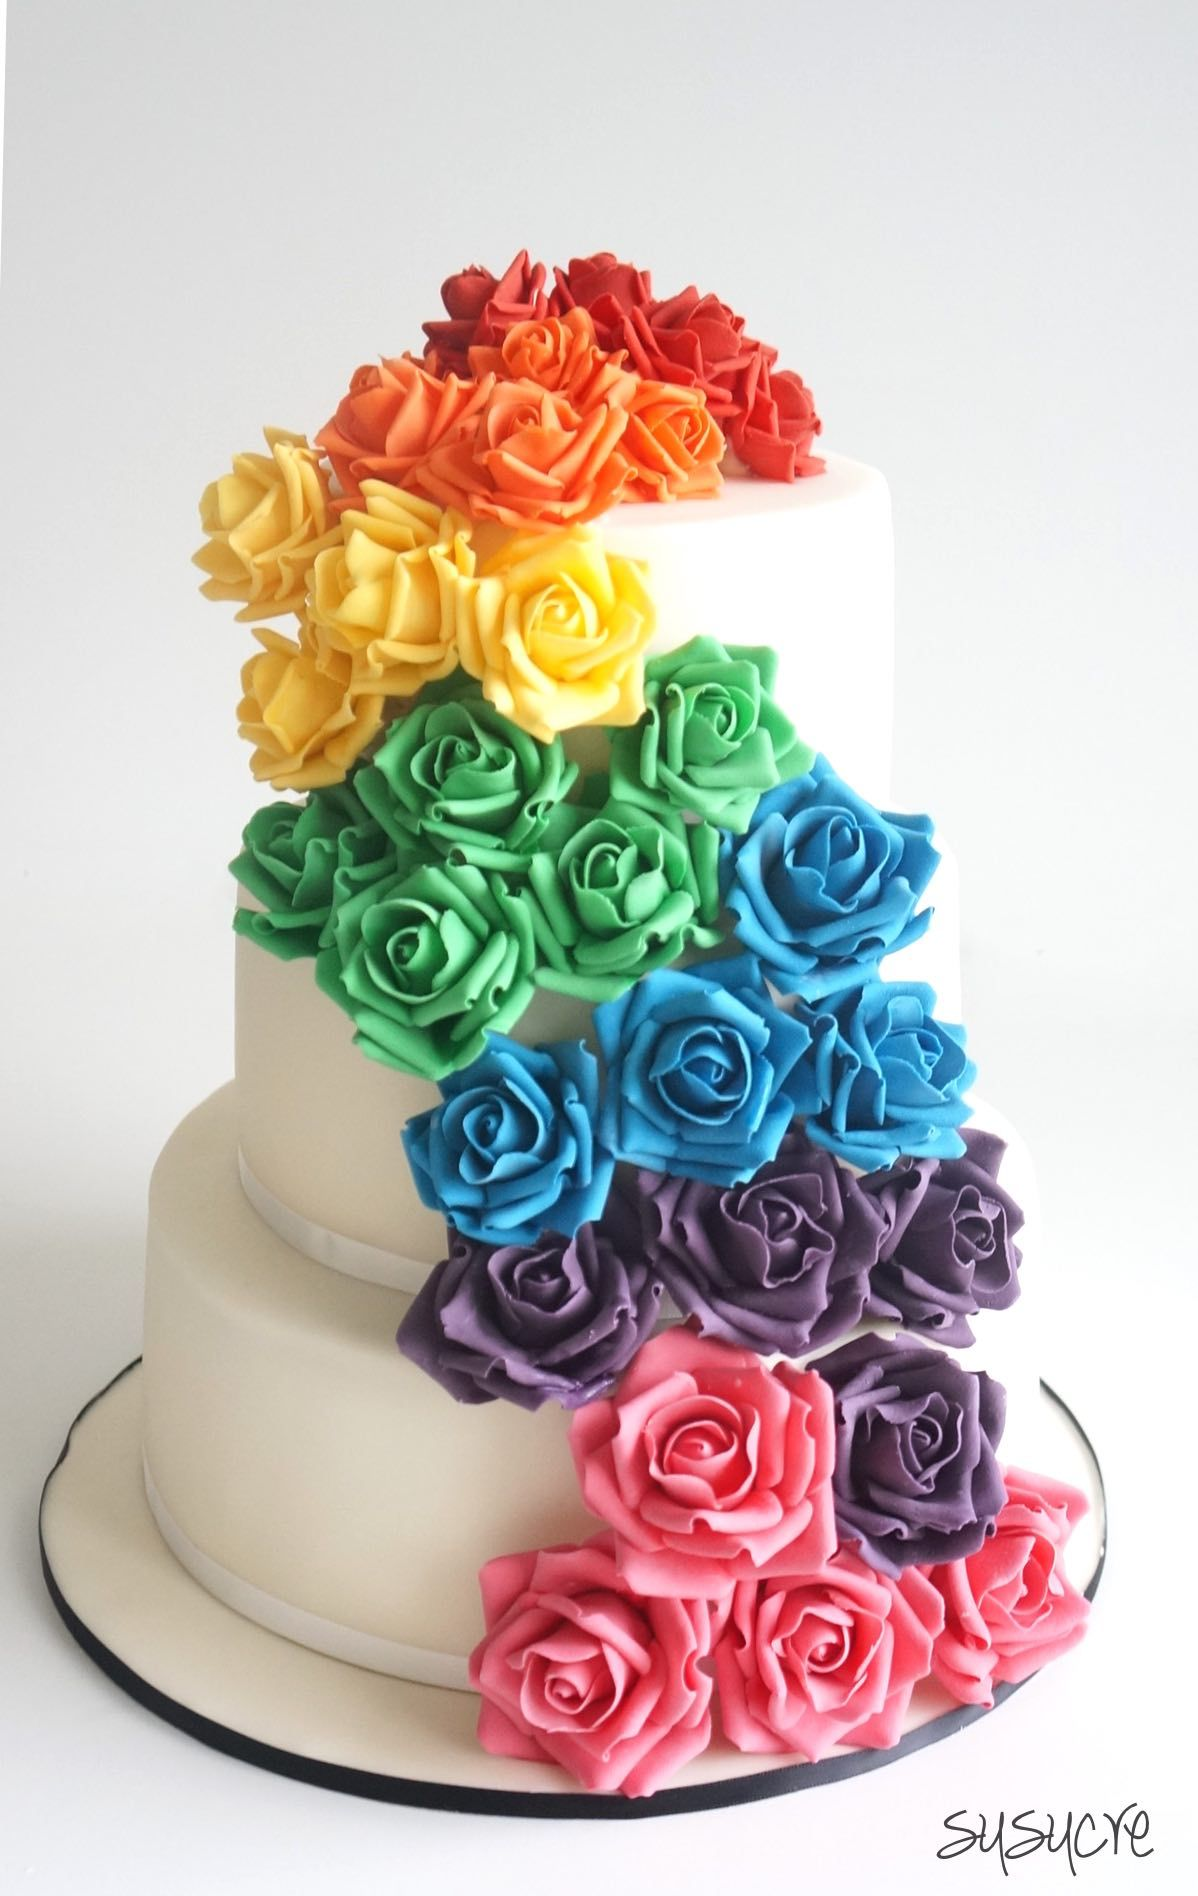 Rainbow rose cake with dozens of rainbow roses fit for a beautiful and colorful wedding celebration custom made by susucre in Singapore